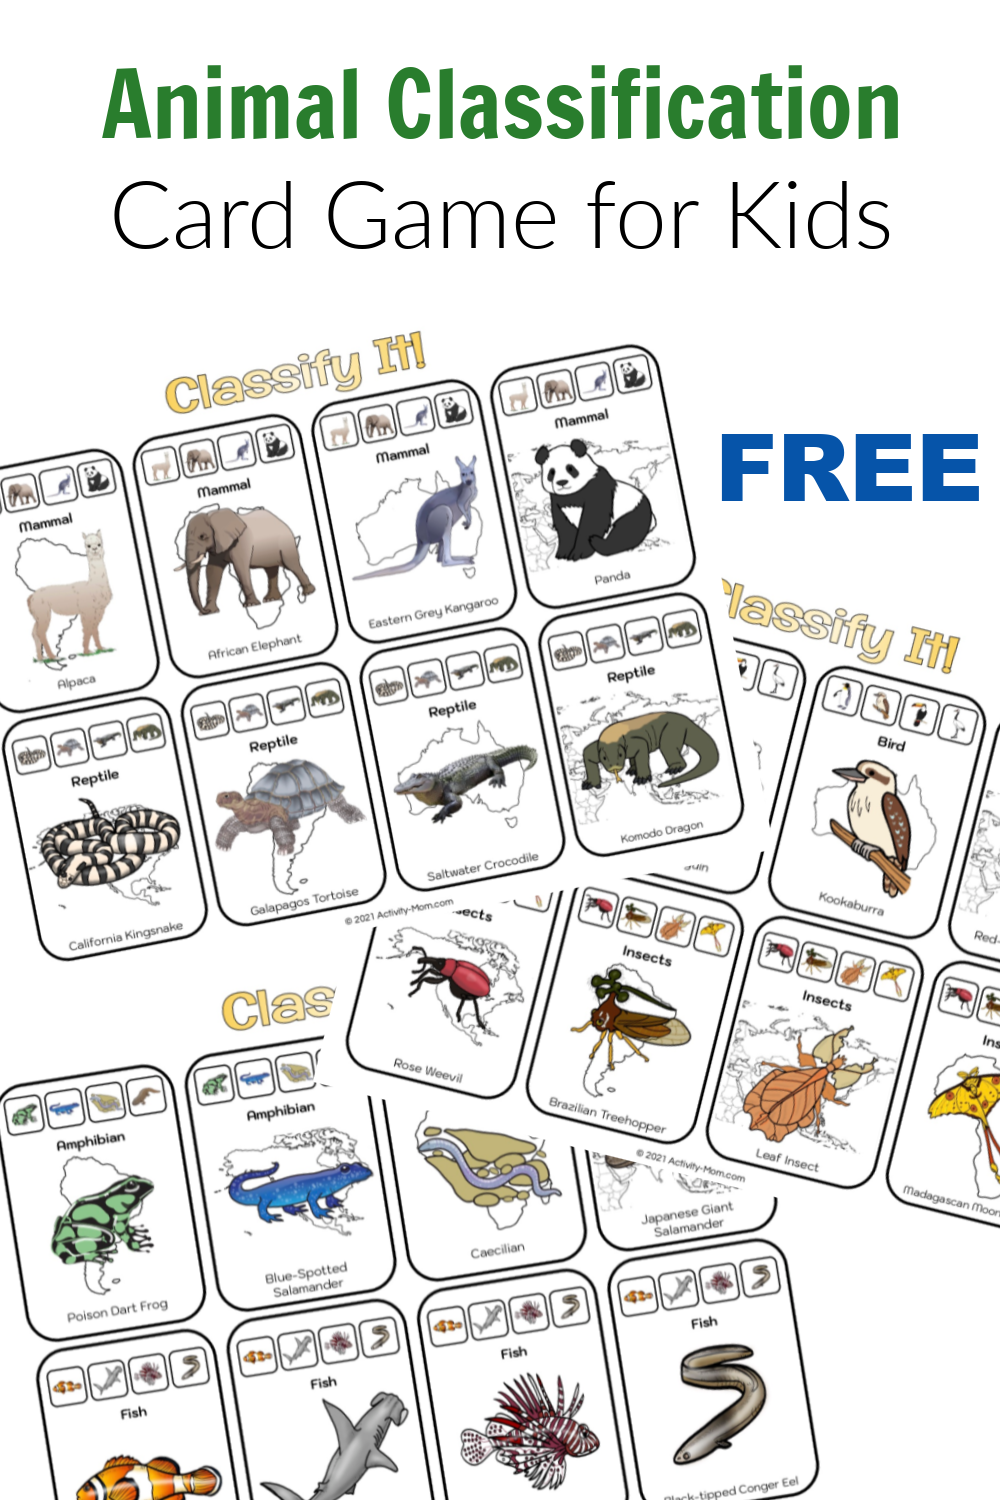 Animal Classification Game for Kids